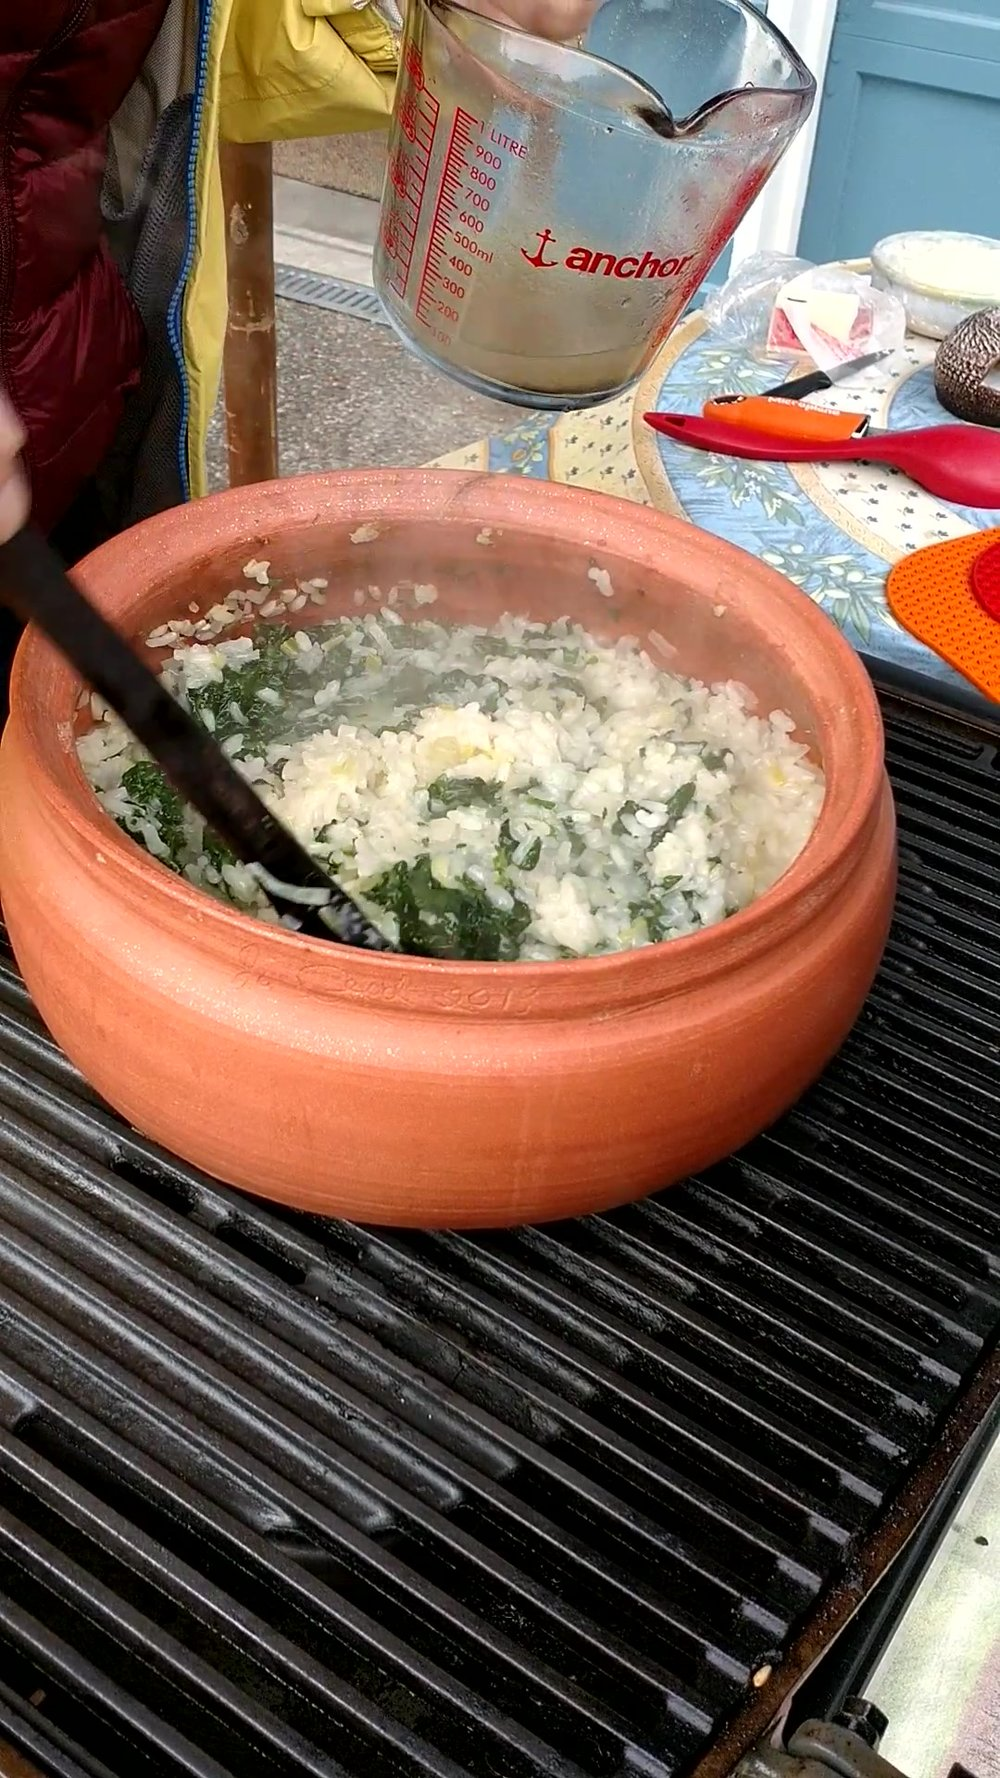 Making spinach risotto in a dutch oven on a propane grill.